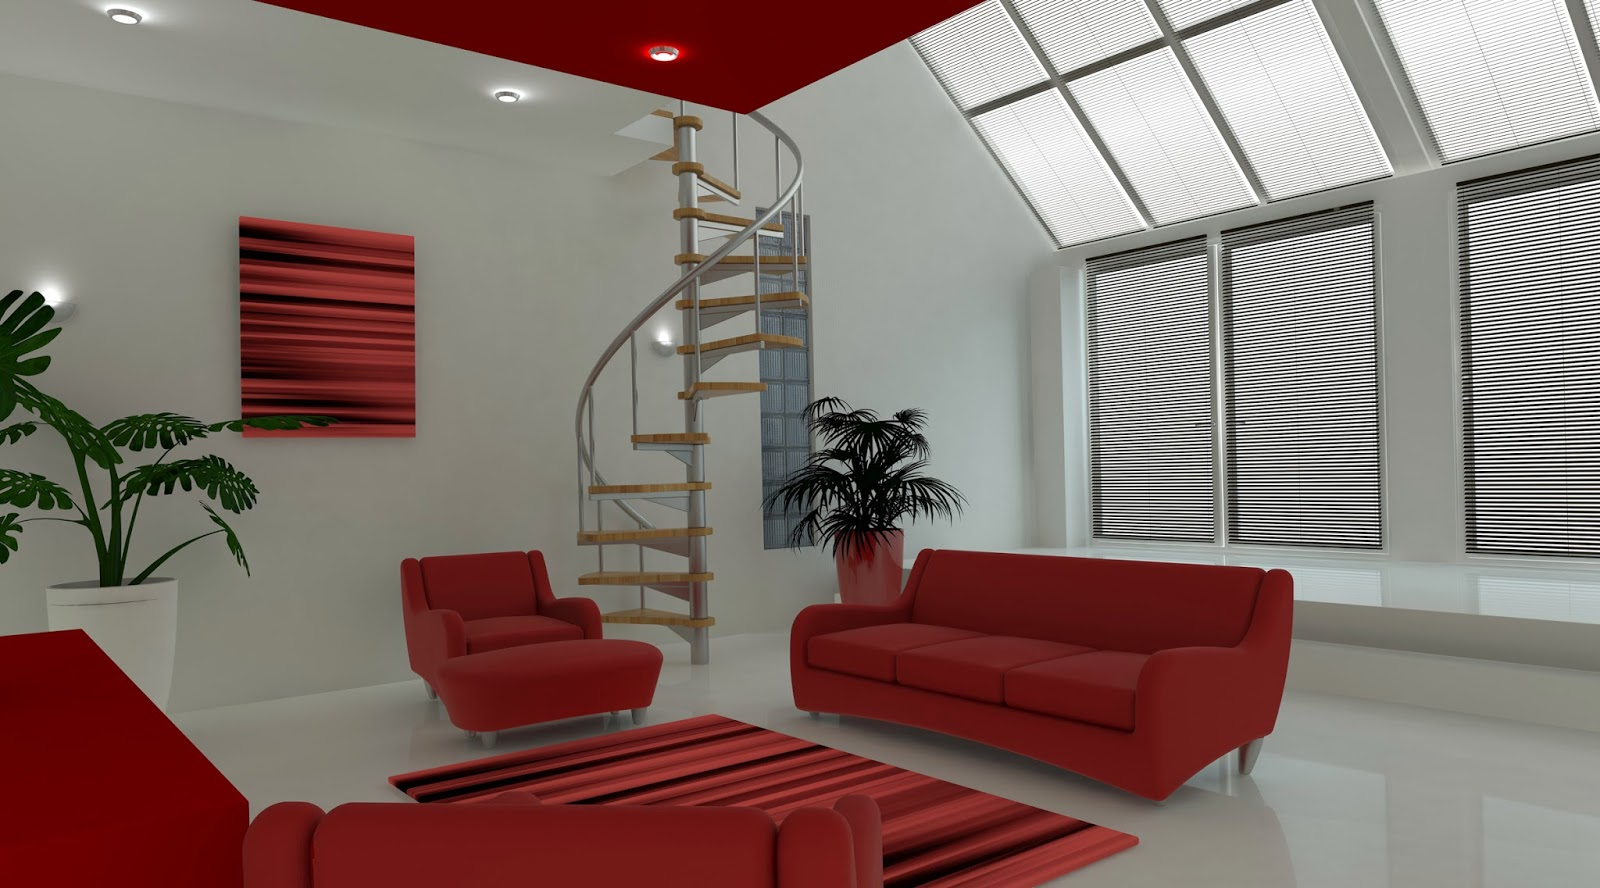 3d room design freeware online room design tool free drw 3d house